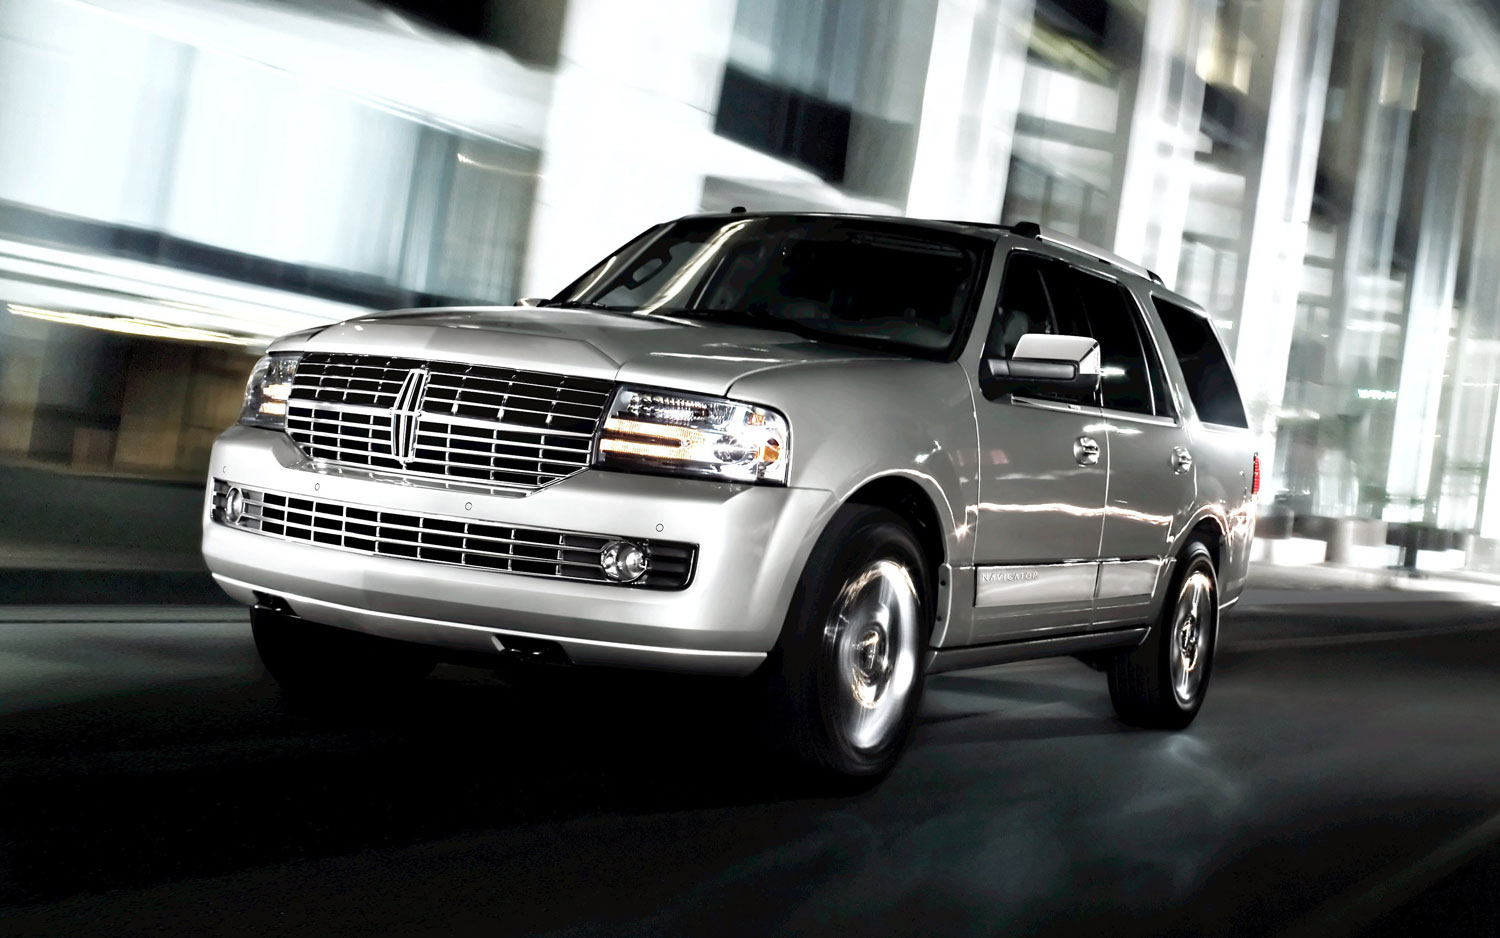 2013 Lincoln Navigator Front View1